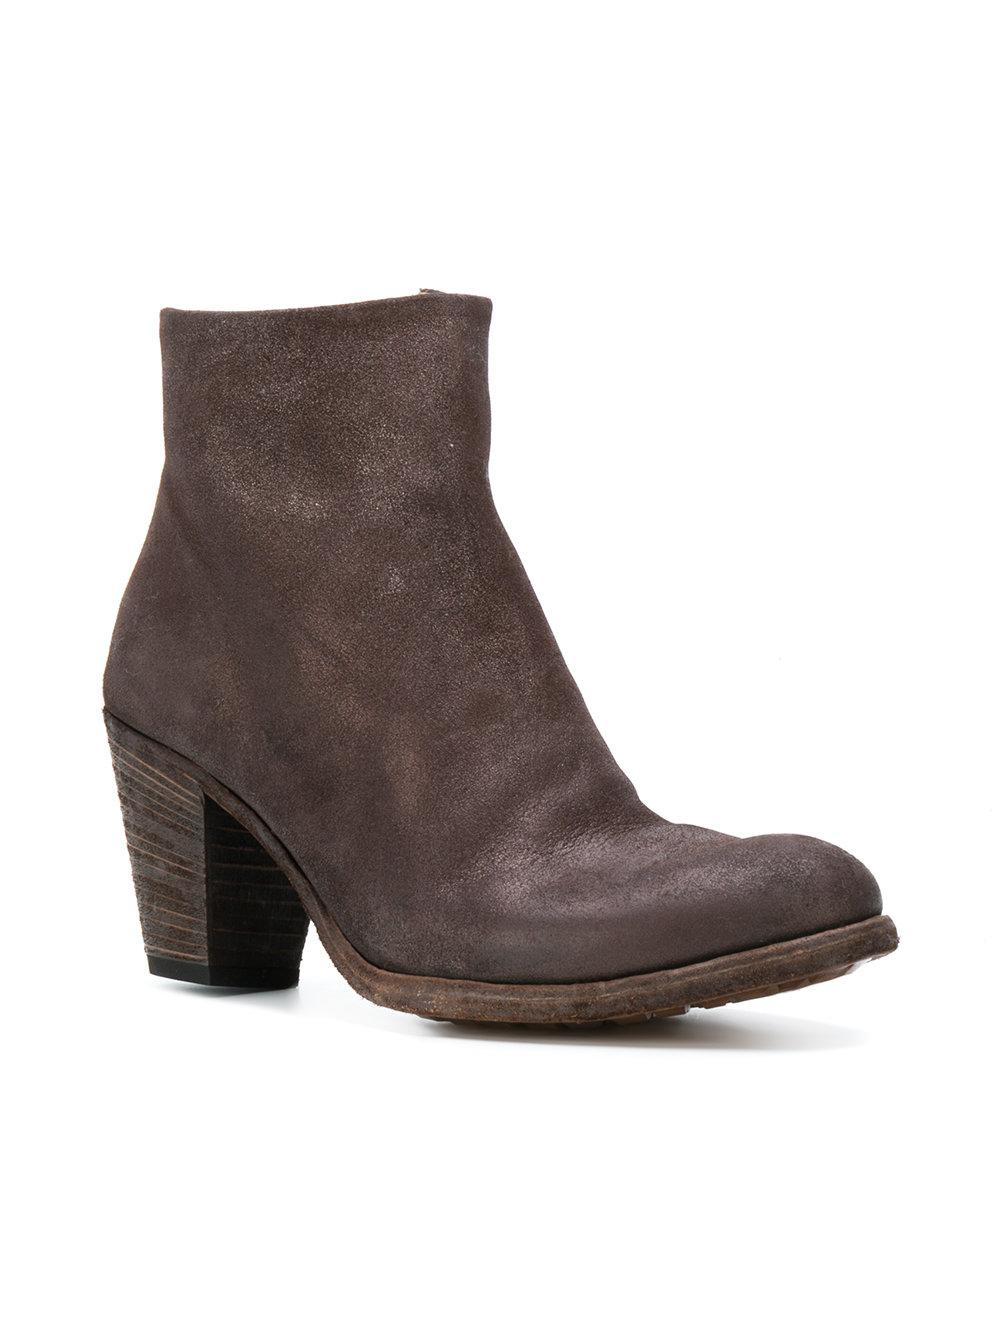 Officine Creative Leather Plaisir Ankle Boots in Brown